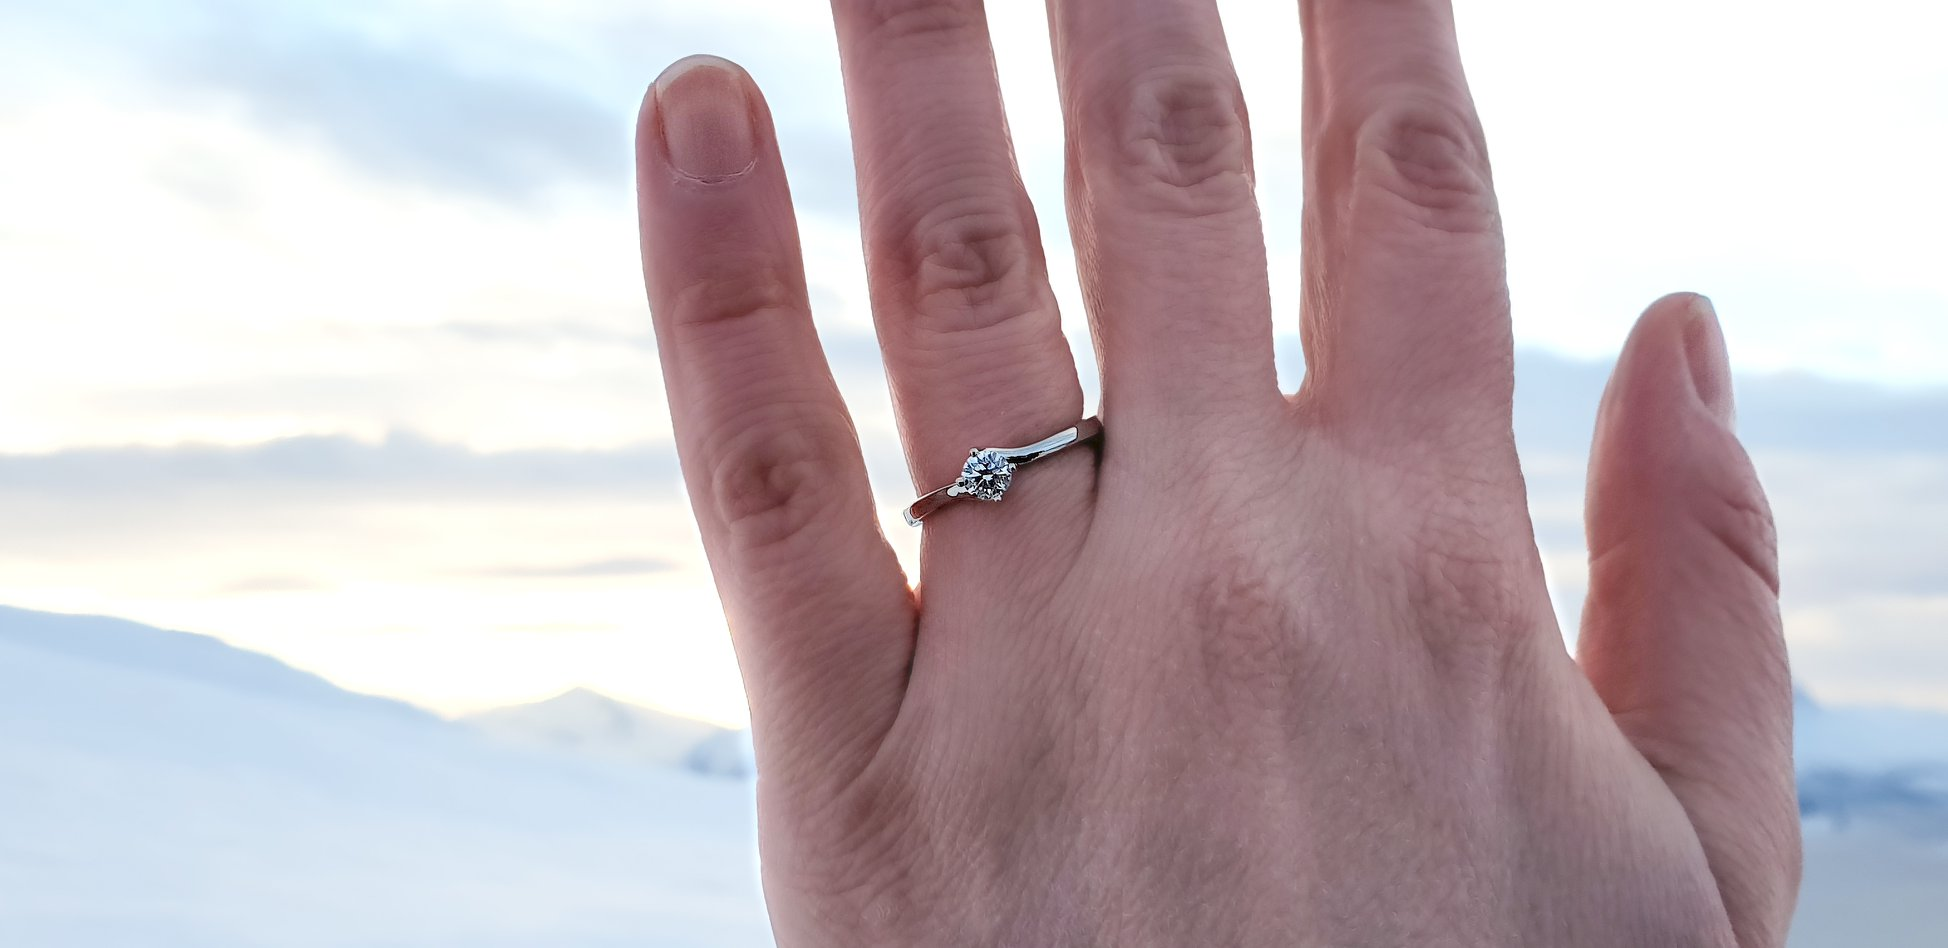 Romantic proposal and engagement ring in the snowy Norwegian mountains